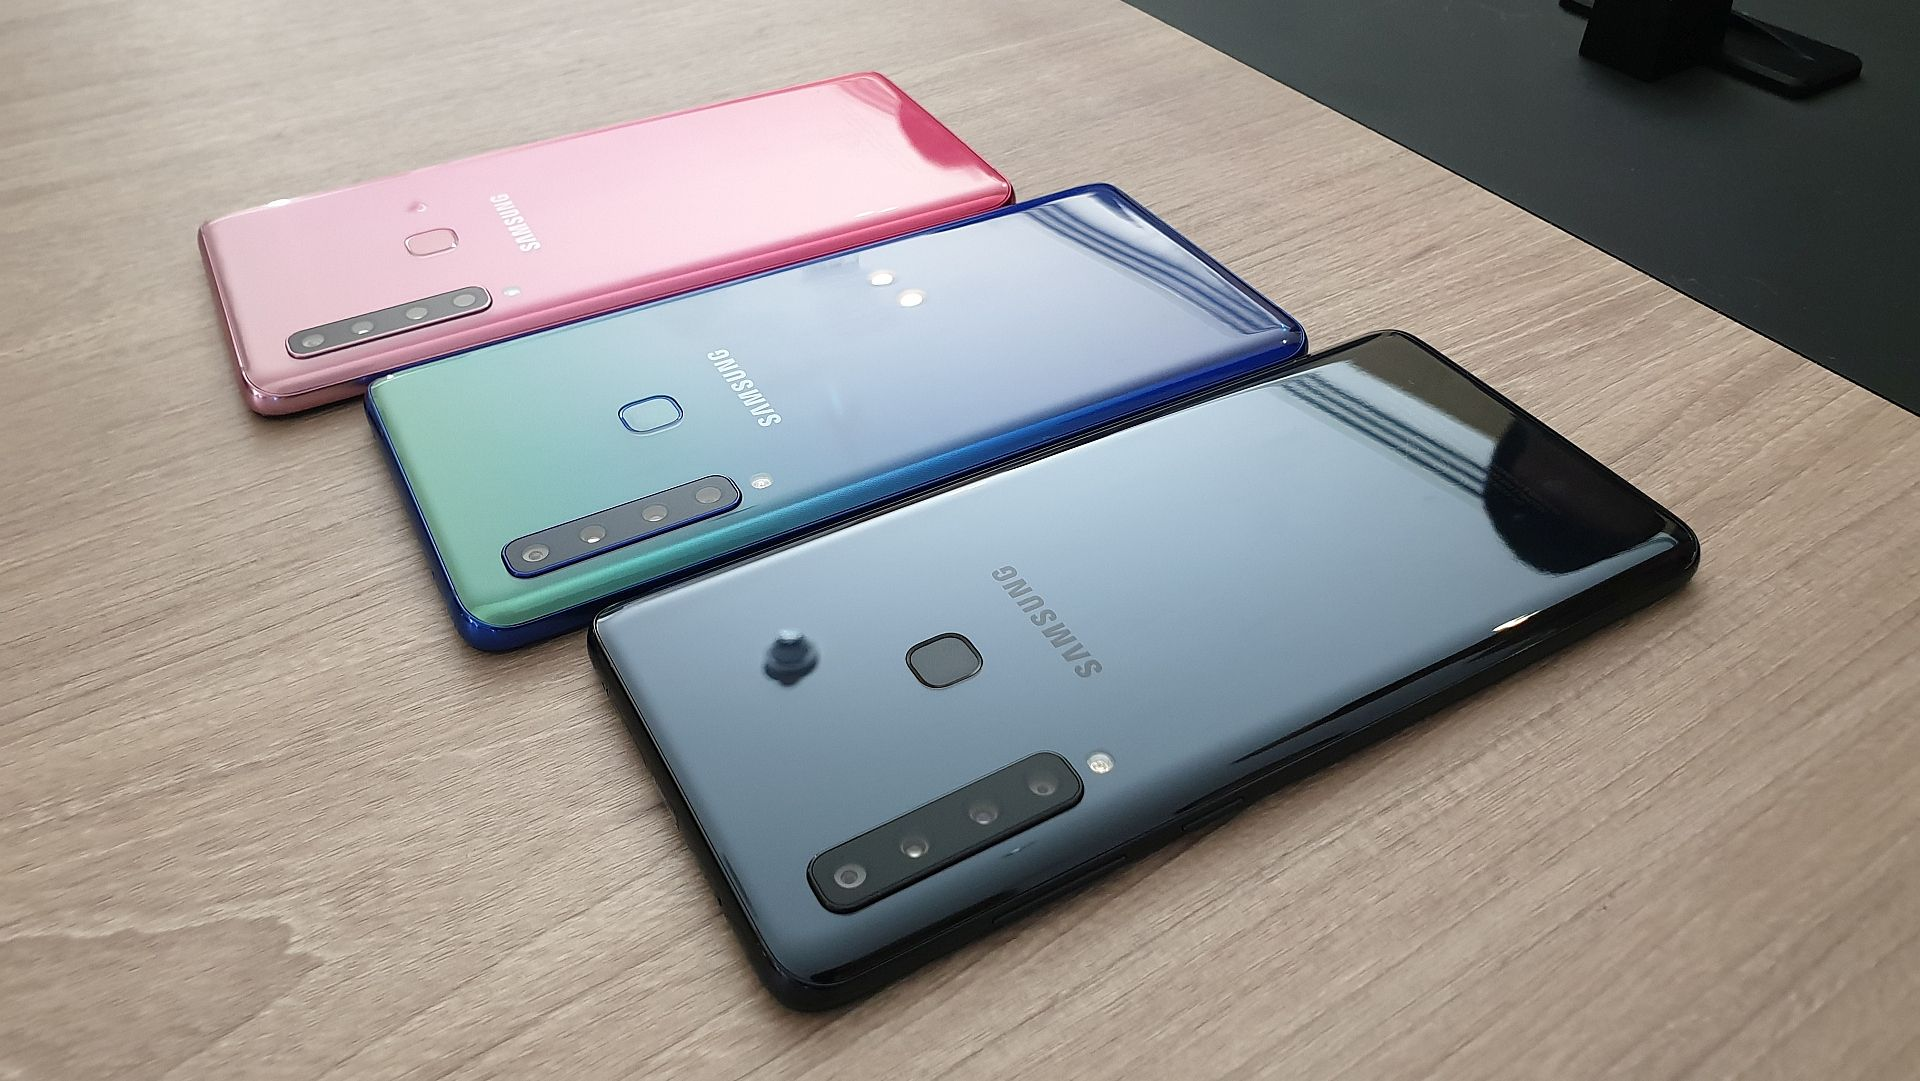 I hope Samsung's smartphone design doesn't stop being